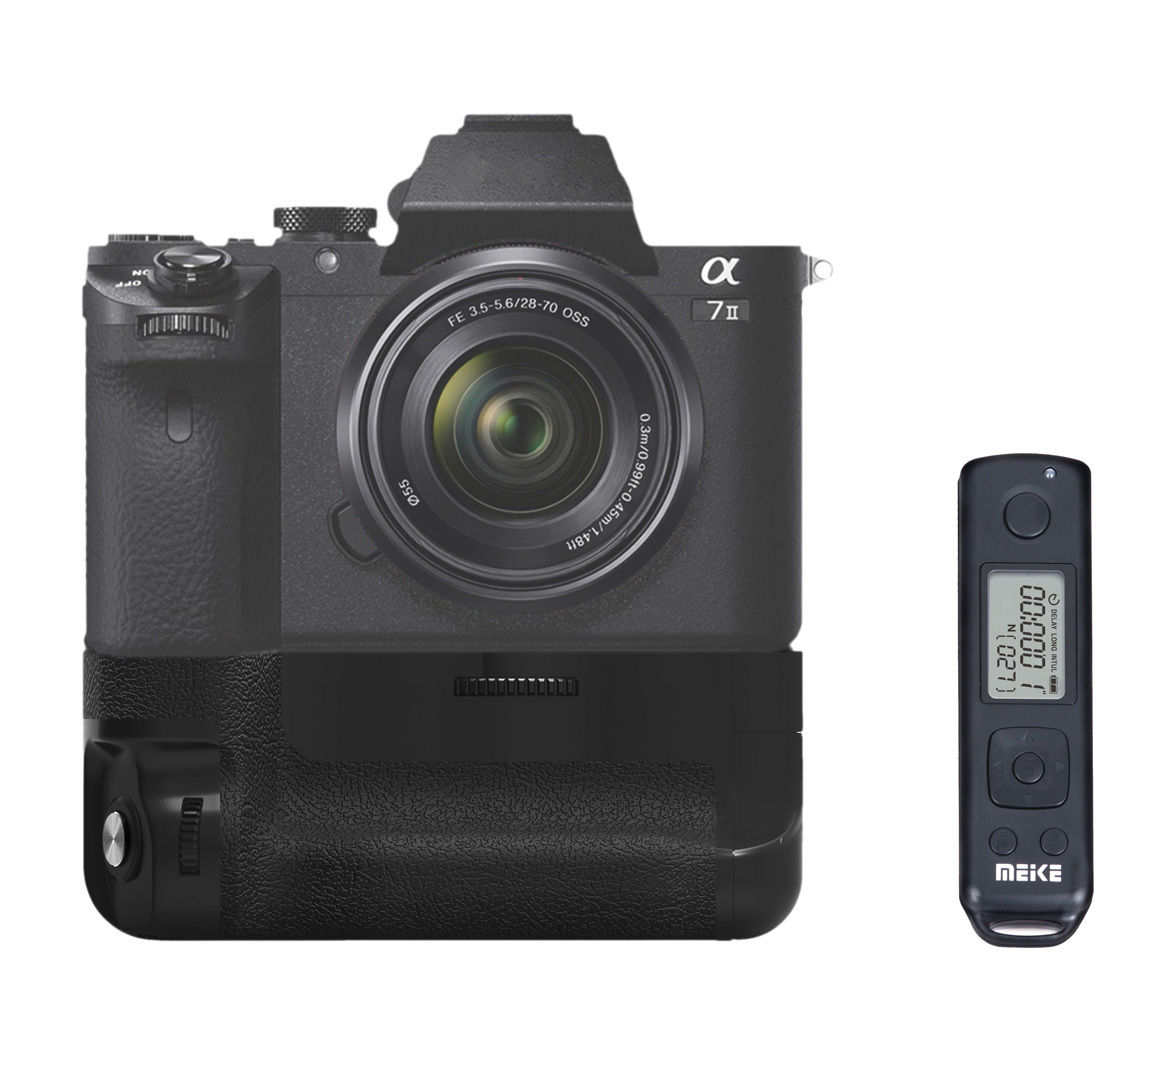 Meike MK-A7II Pro Built-in Wireless Control Battery Grip for Sony A7 II A7R II A7S II as for Sony VG-C2EM meike mk a6300 pro remote control battery grip 2 4g wireless remote control for sony a6300 ilce a6300 np fw50